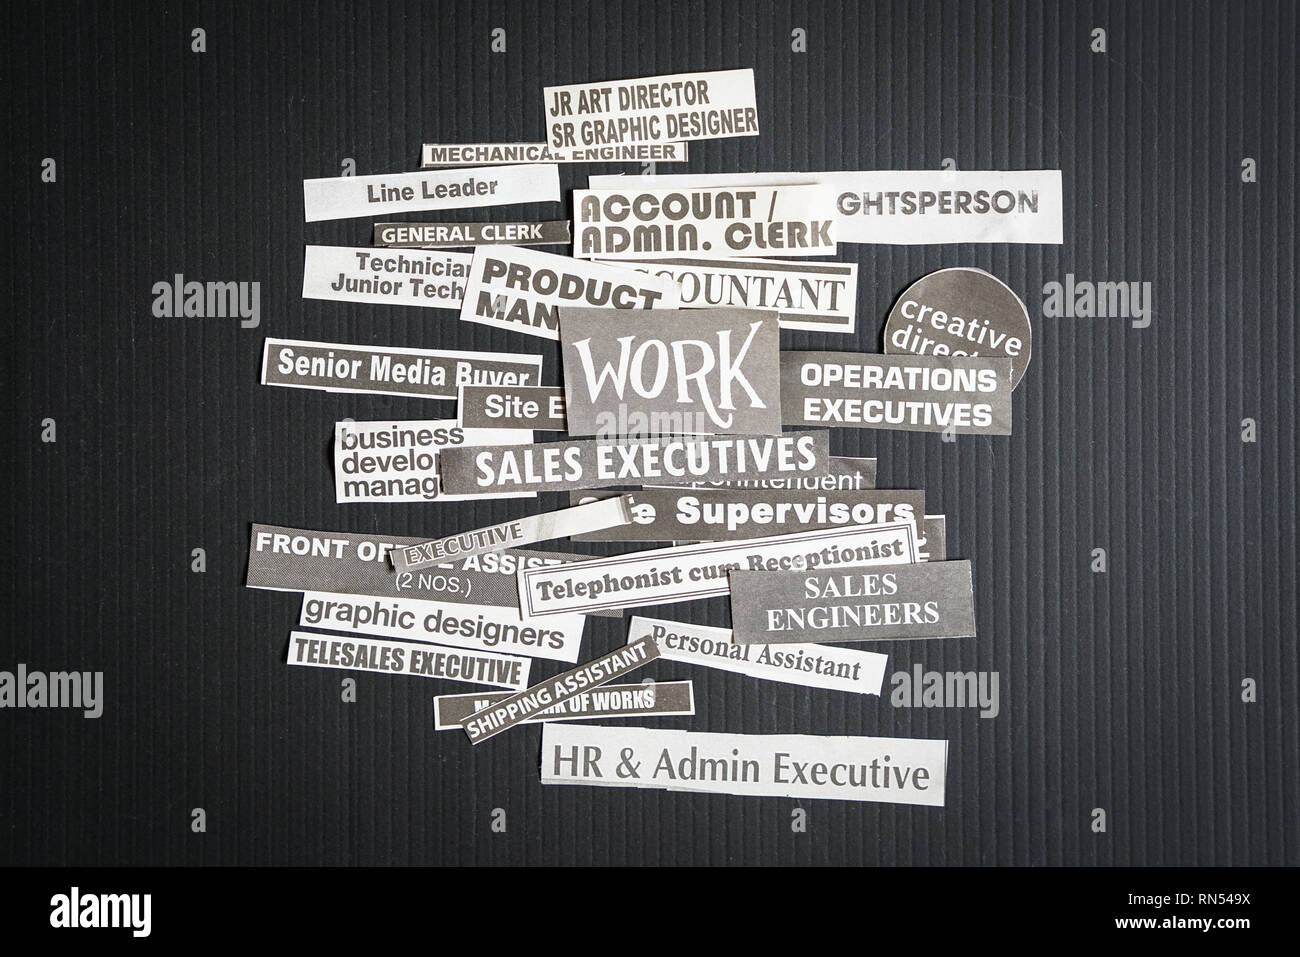 Jobs or careers concept: multiple job titles or occupations cut off from newspaper with Work on top of the pile and on black background - Stock Image